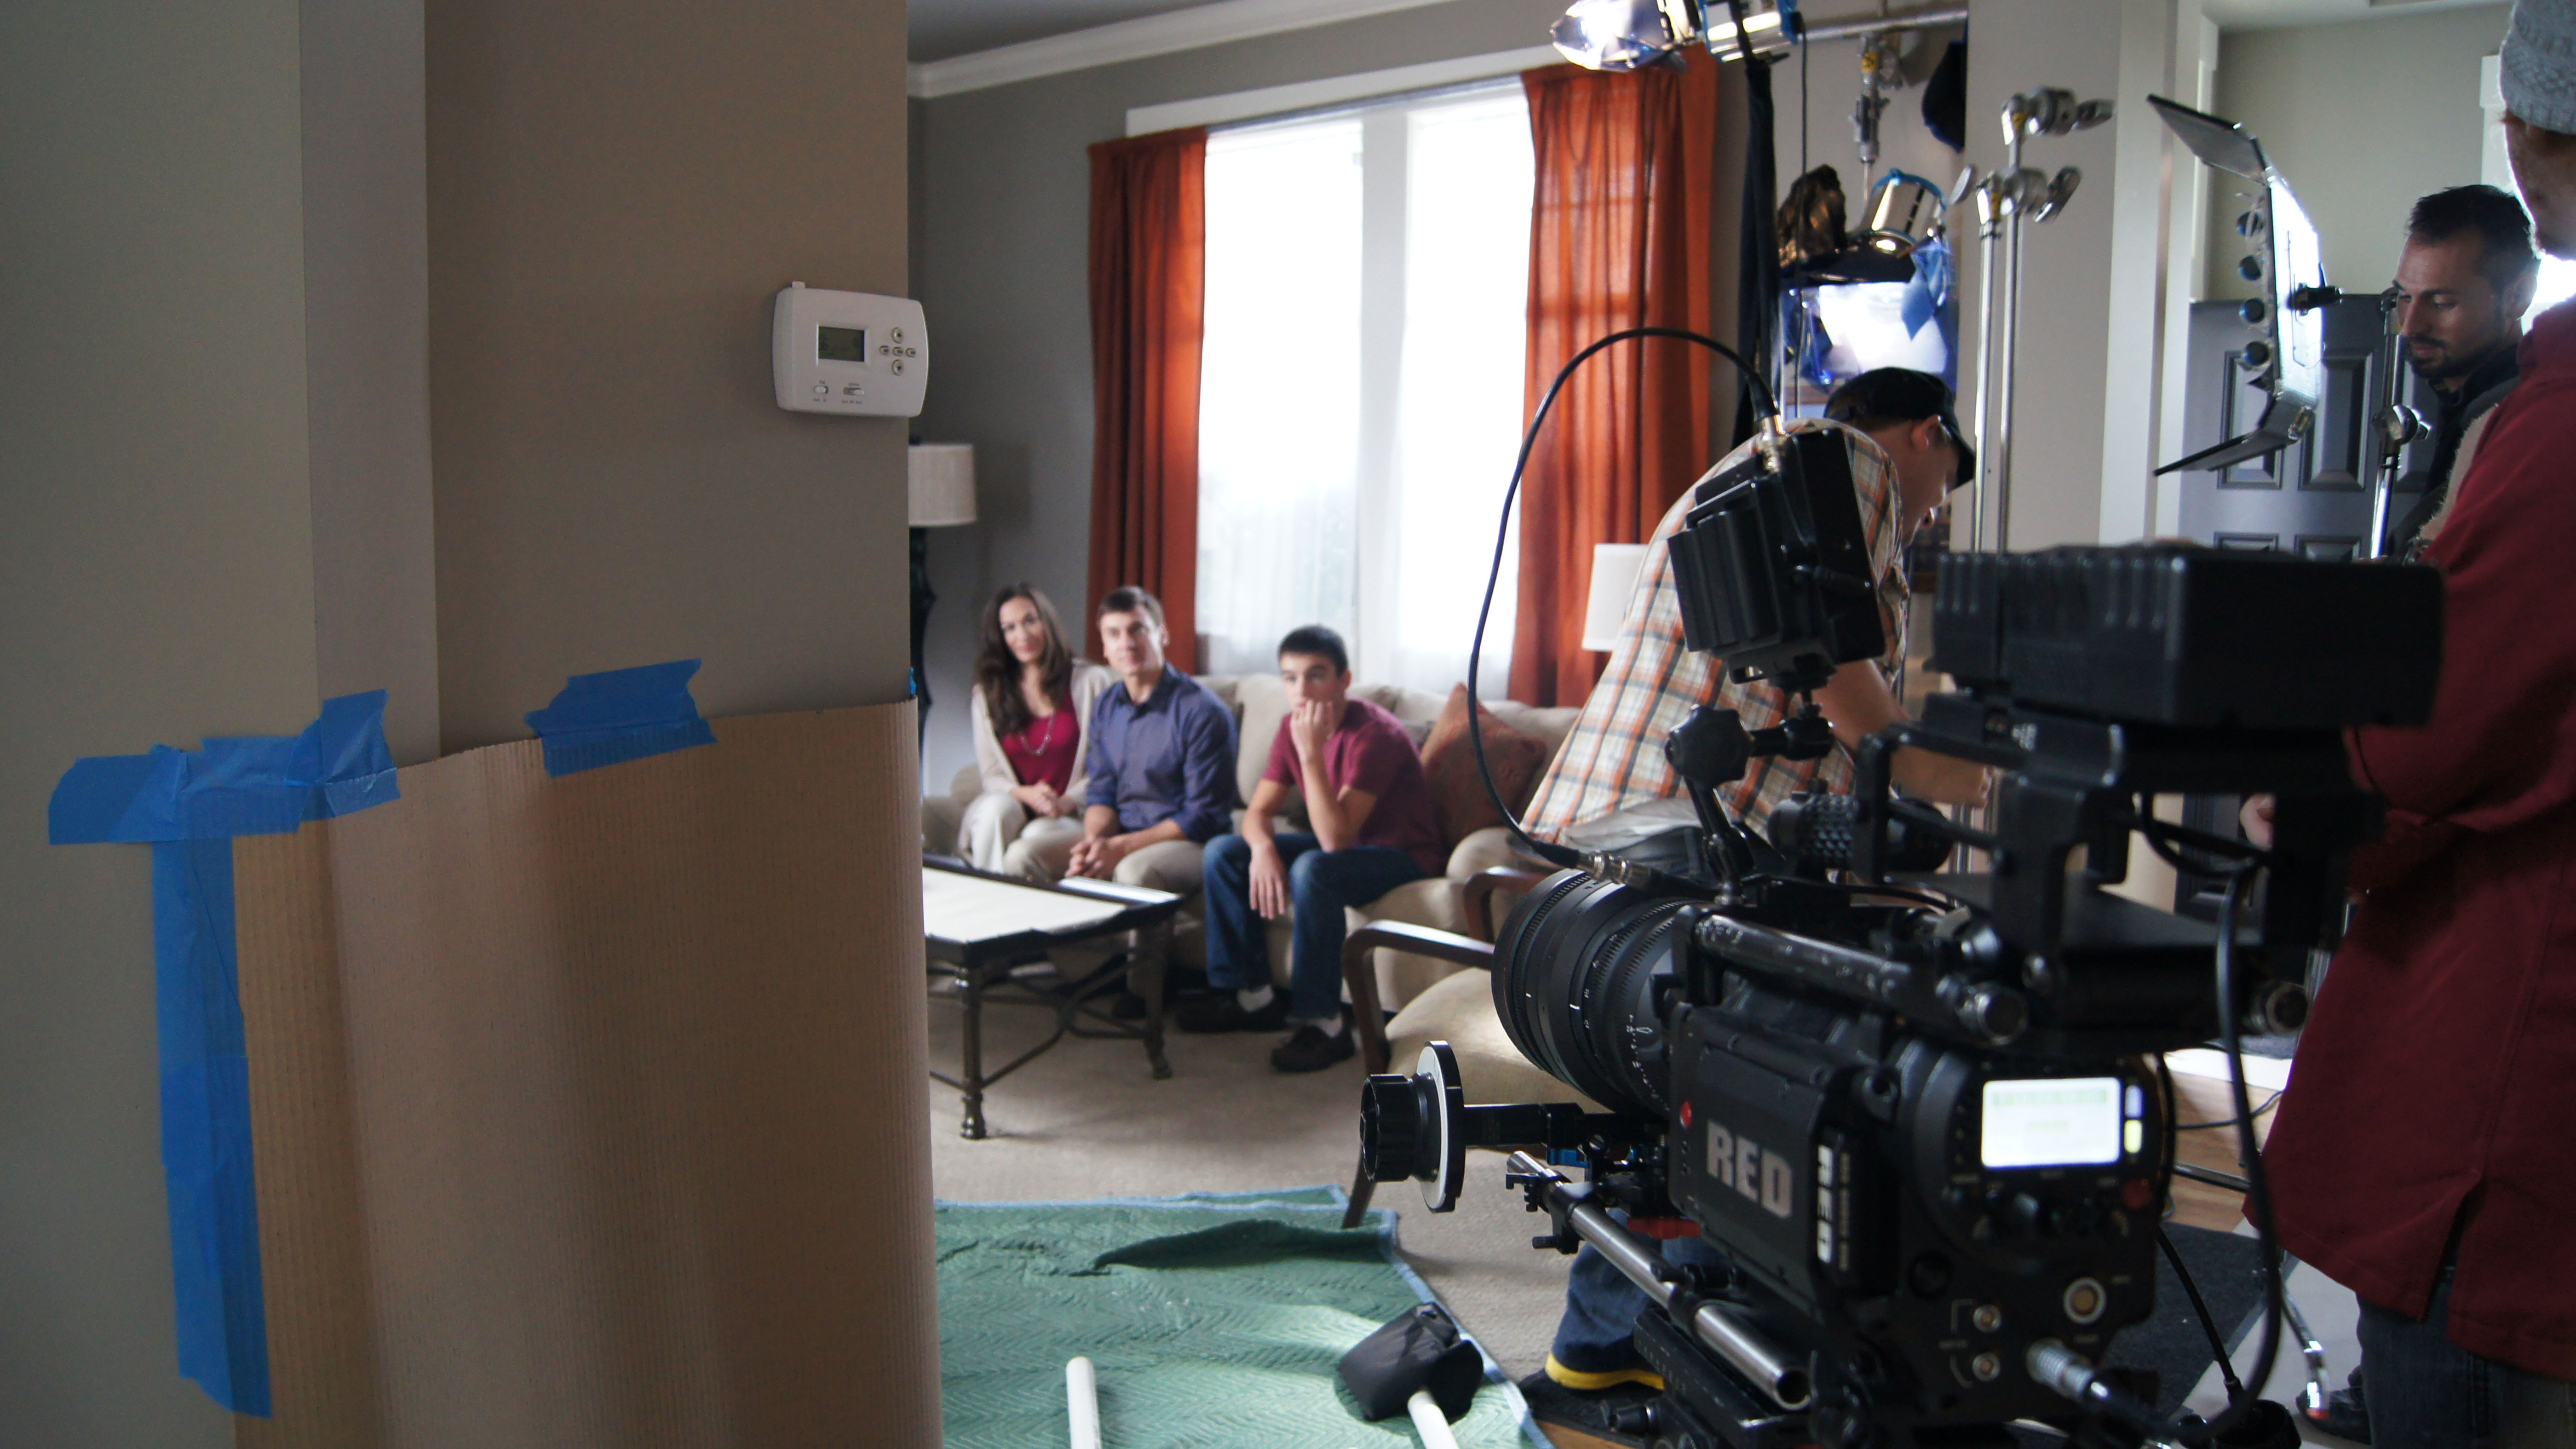 Video production crew filming two parents and a child in a living room setting